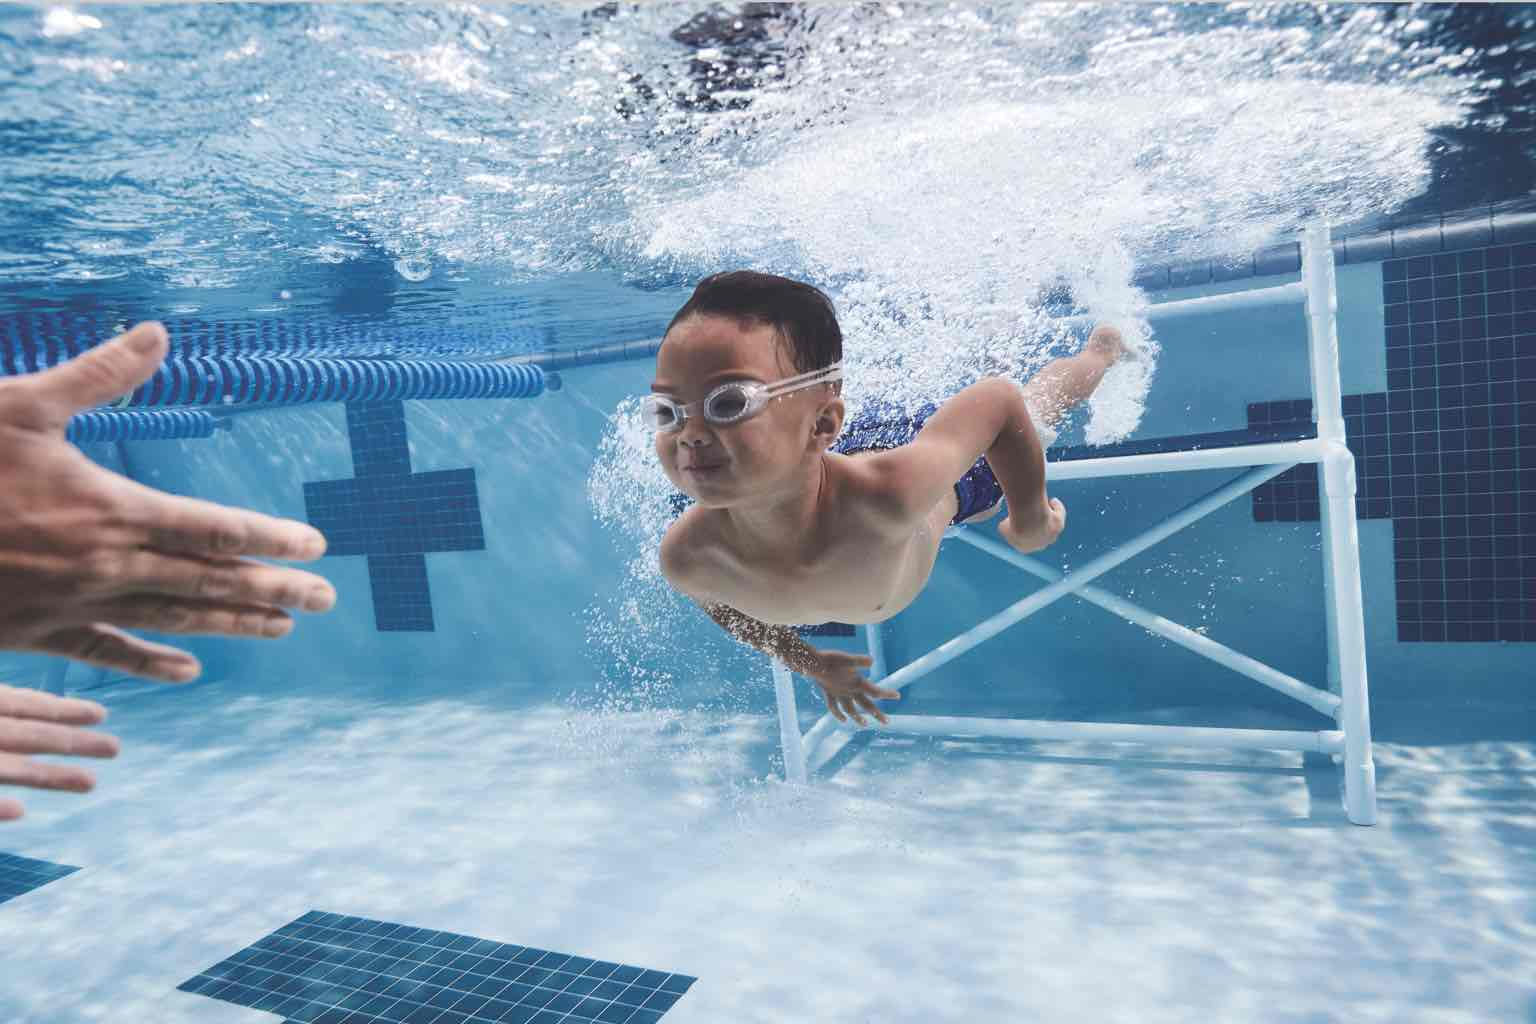 A child wearing swim goggles swimming underwater toward the outstretched hands of an adult in an indoor pool